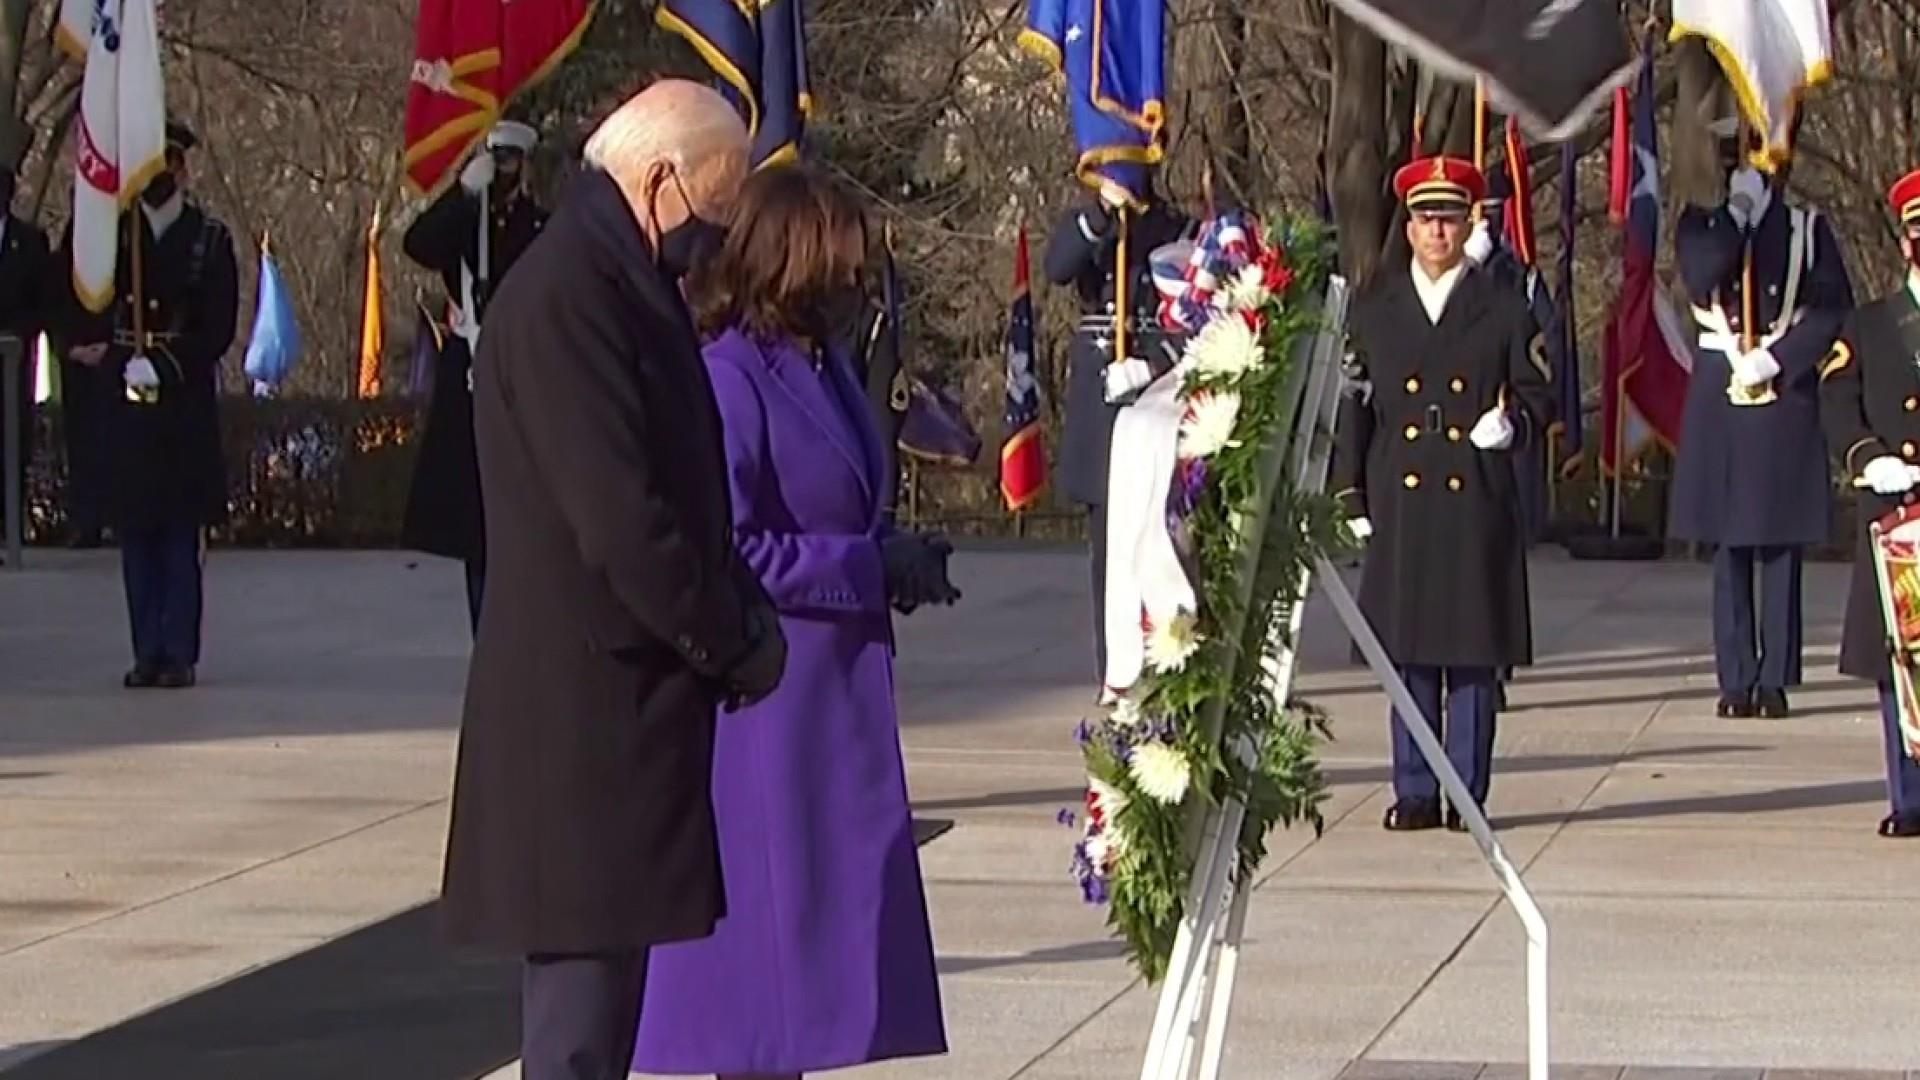 President Biden & VP Harris at the Tomb of the Unknown Soldier at Arlington National Cemetery